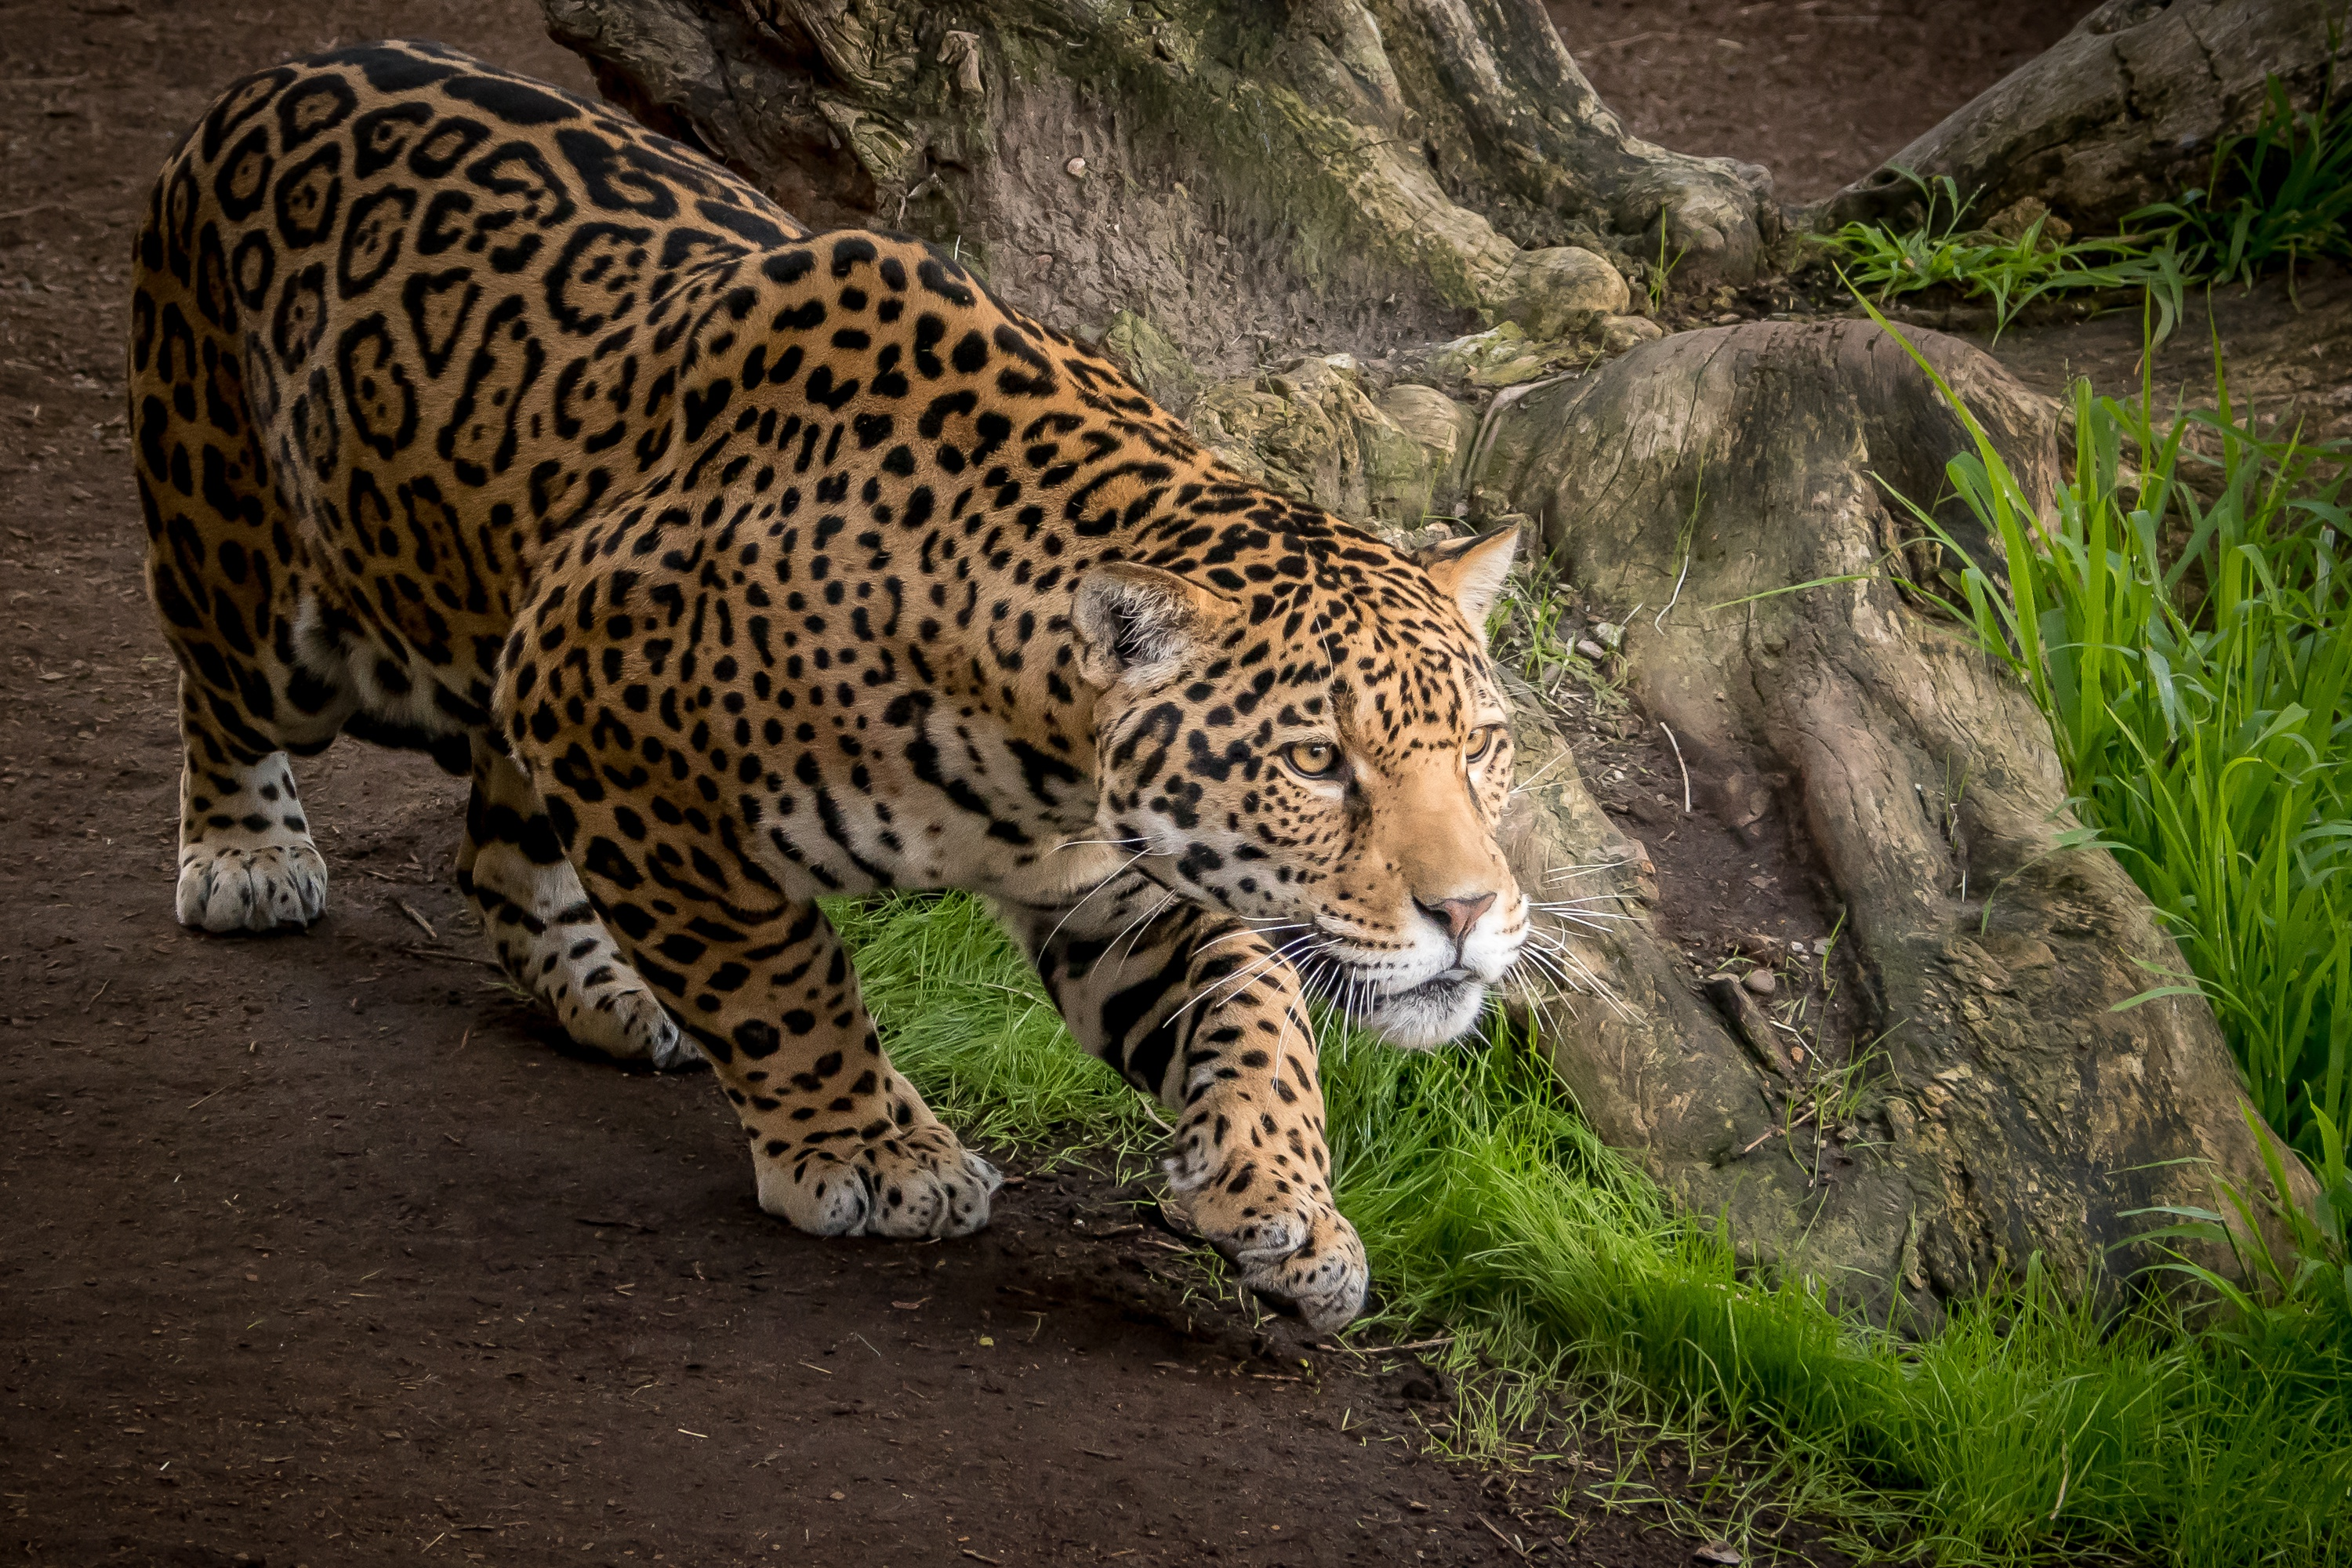 1920x1080 Jaguar Animal Laptop Full Hd 1080p Hd 4k Wallpapers Images Backgrounds Photos And Pictures